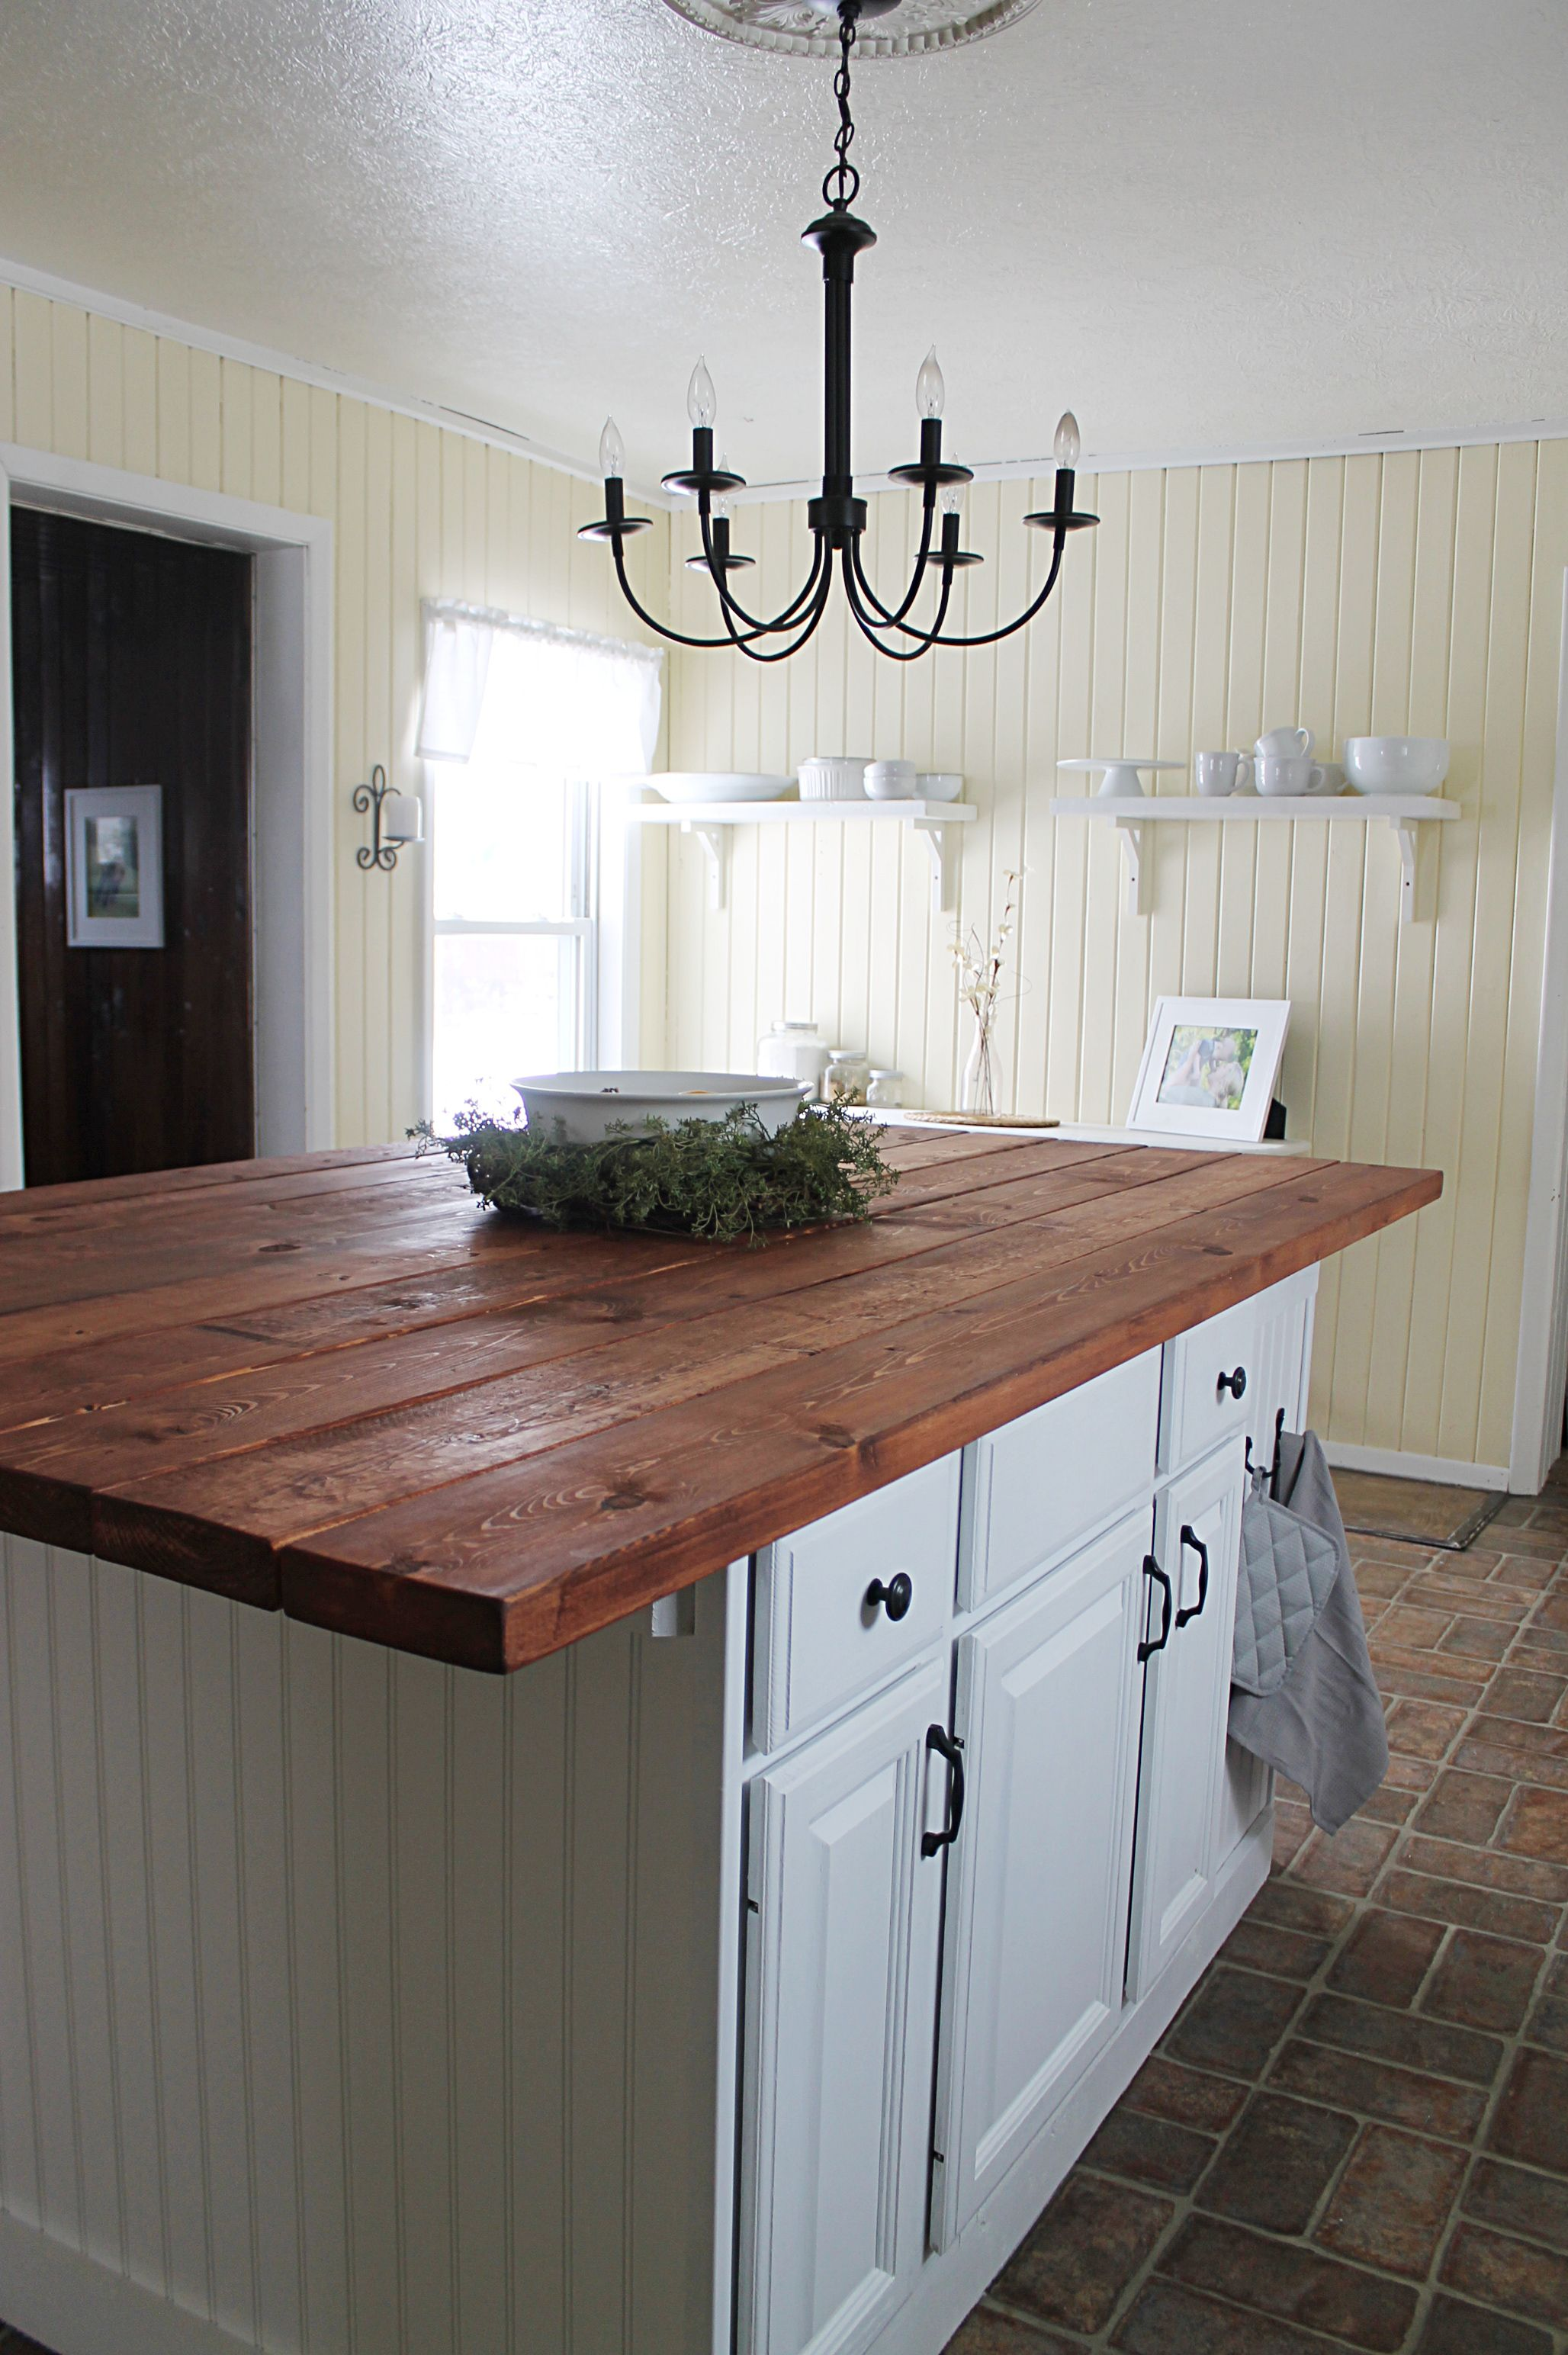 Farmhouse kitchen island lighting - Gorgeous Farmhouse Kitchen Island